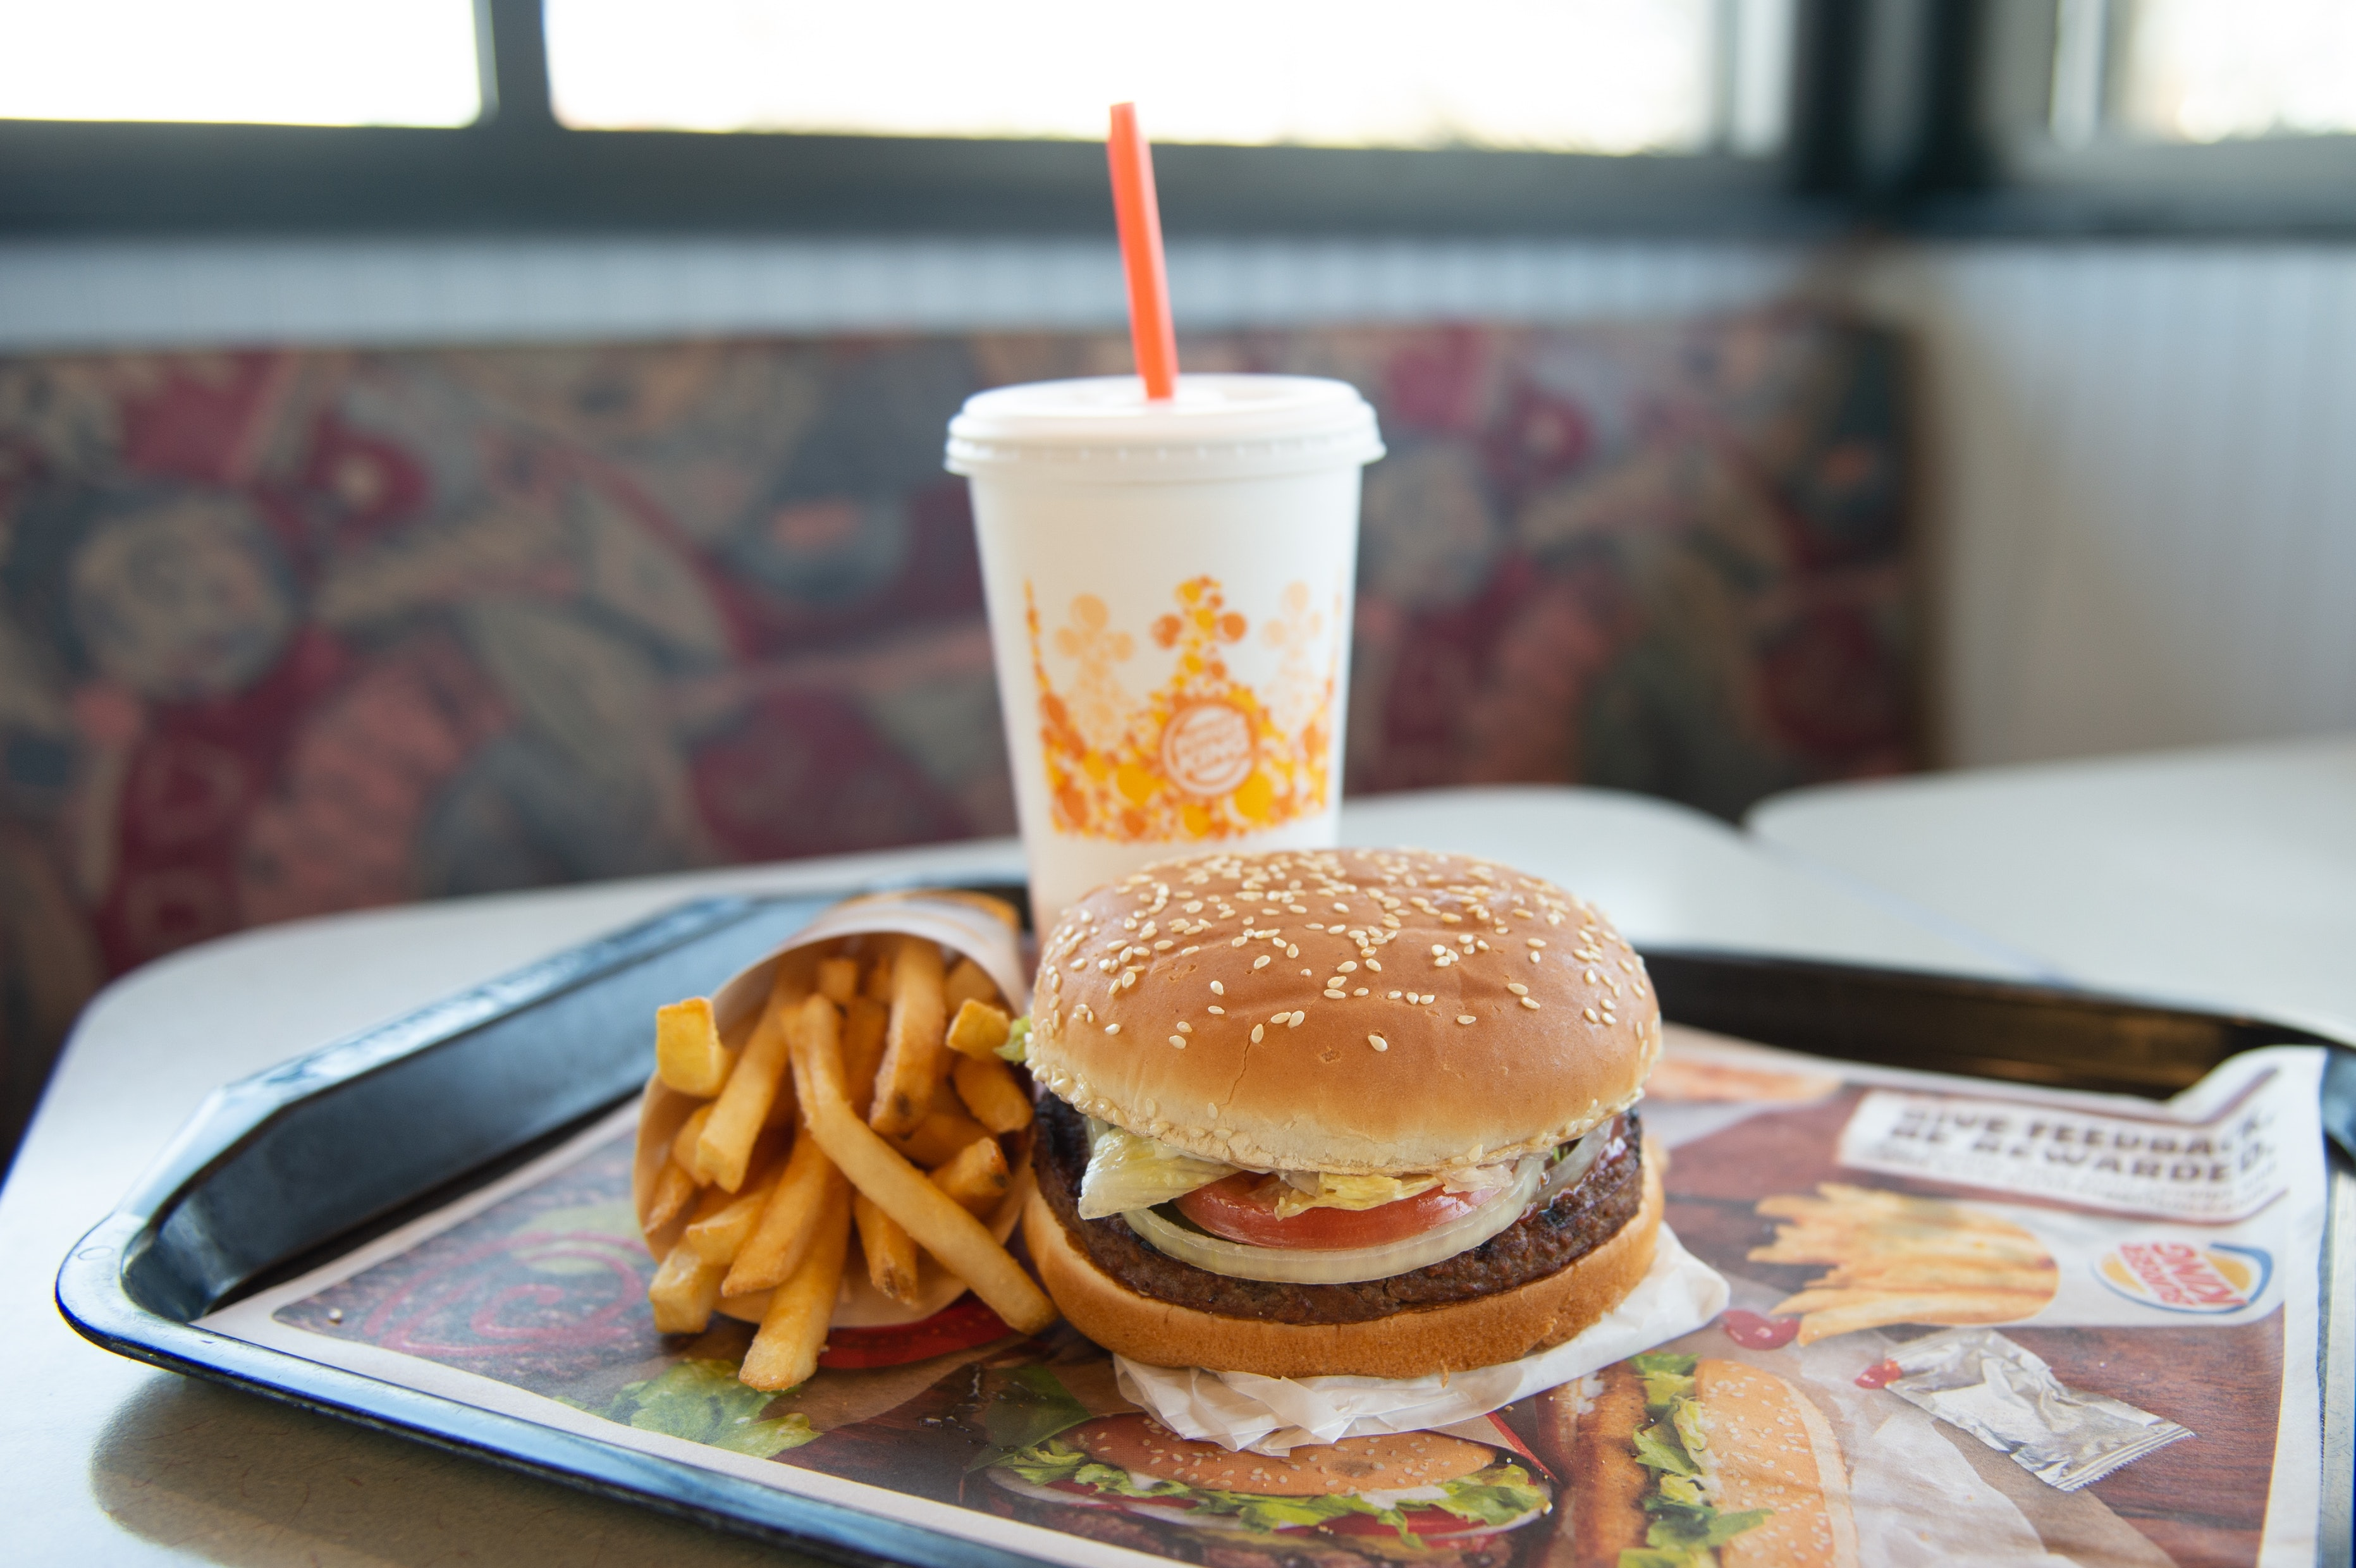 Burger King's Summer 2019 Whopper Deals Will Get You A Meal